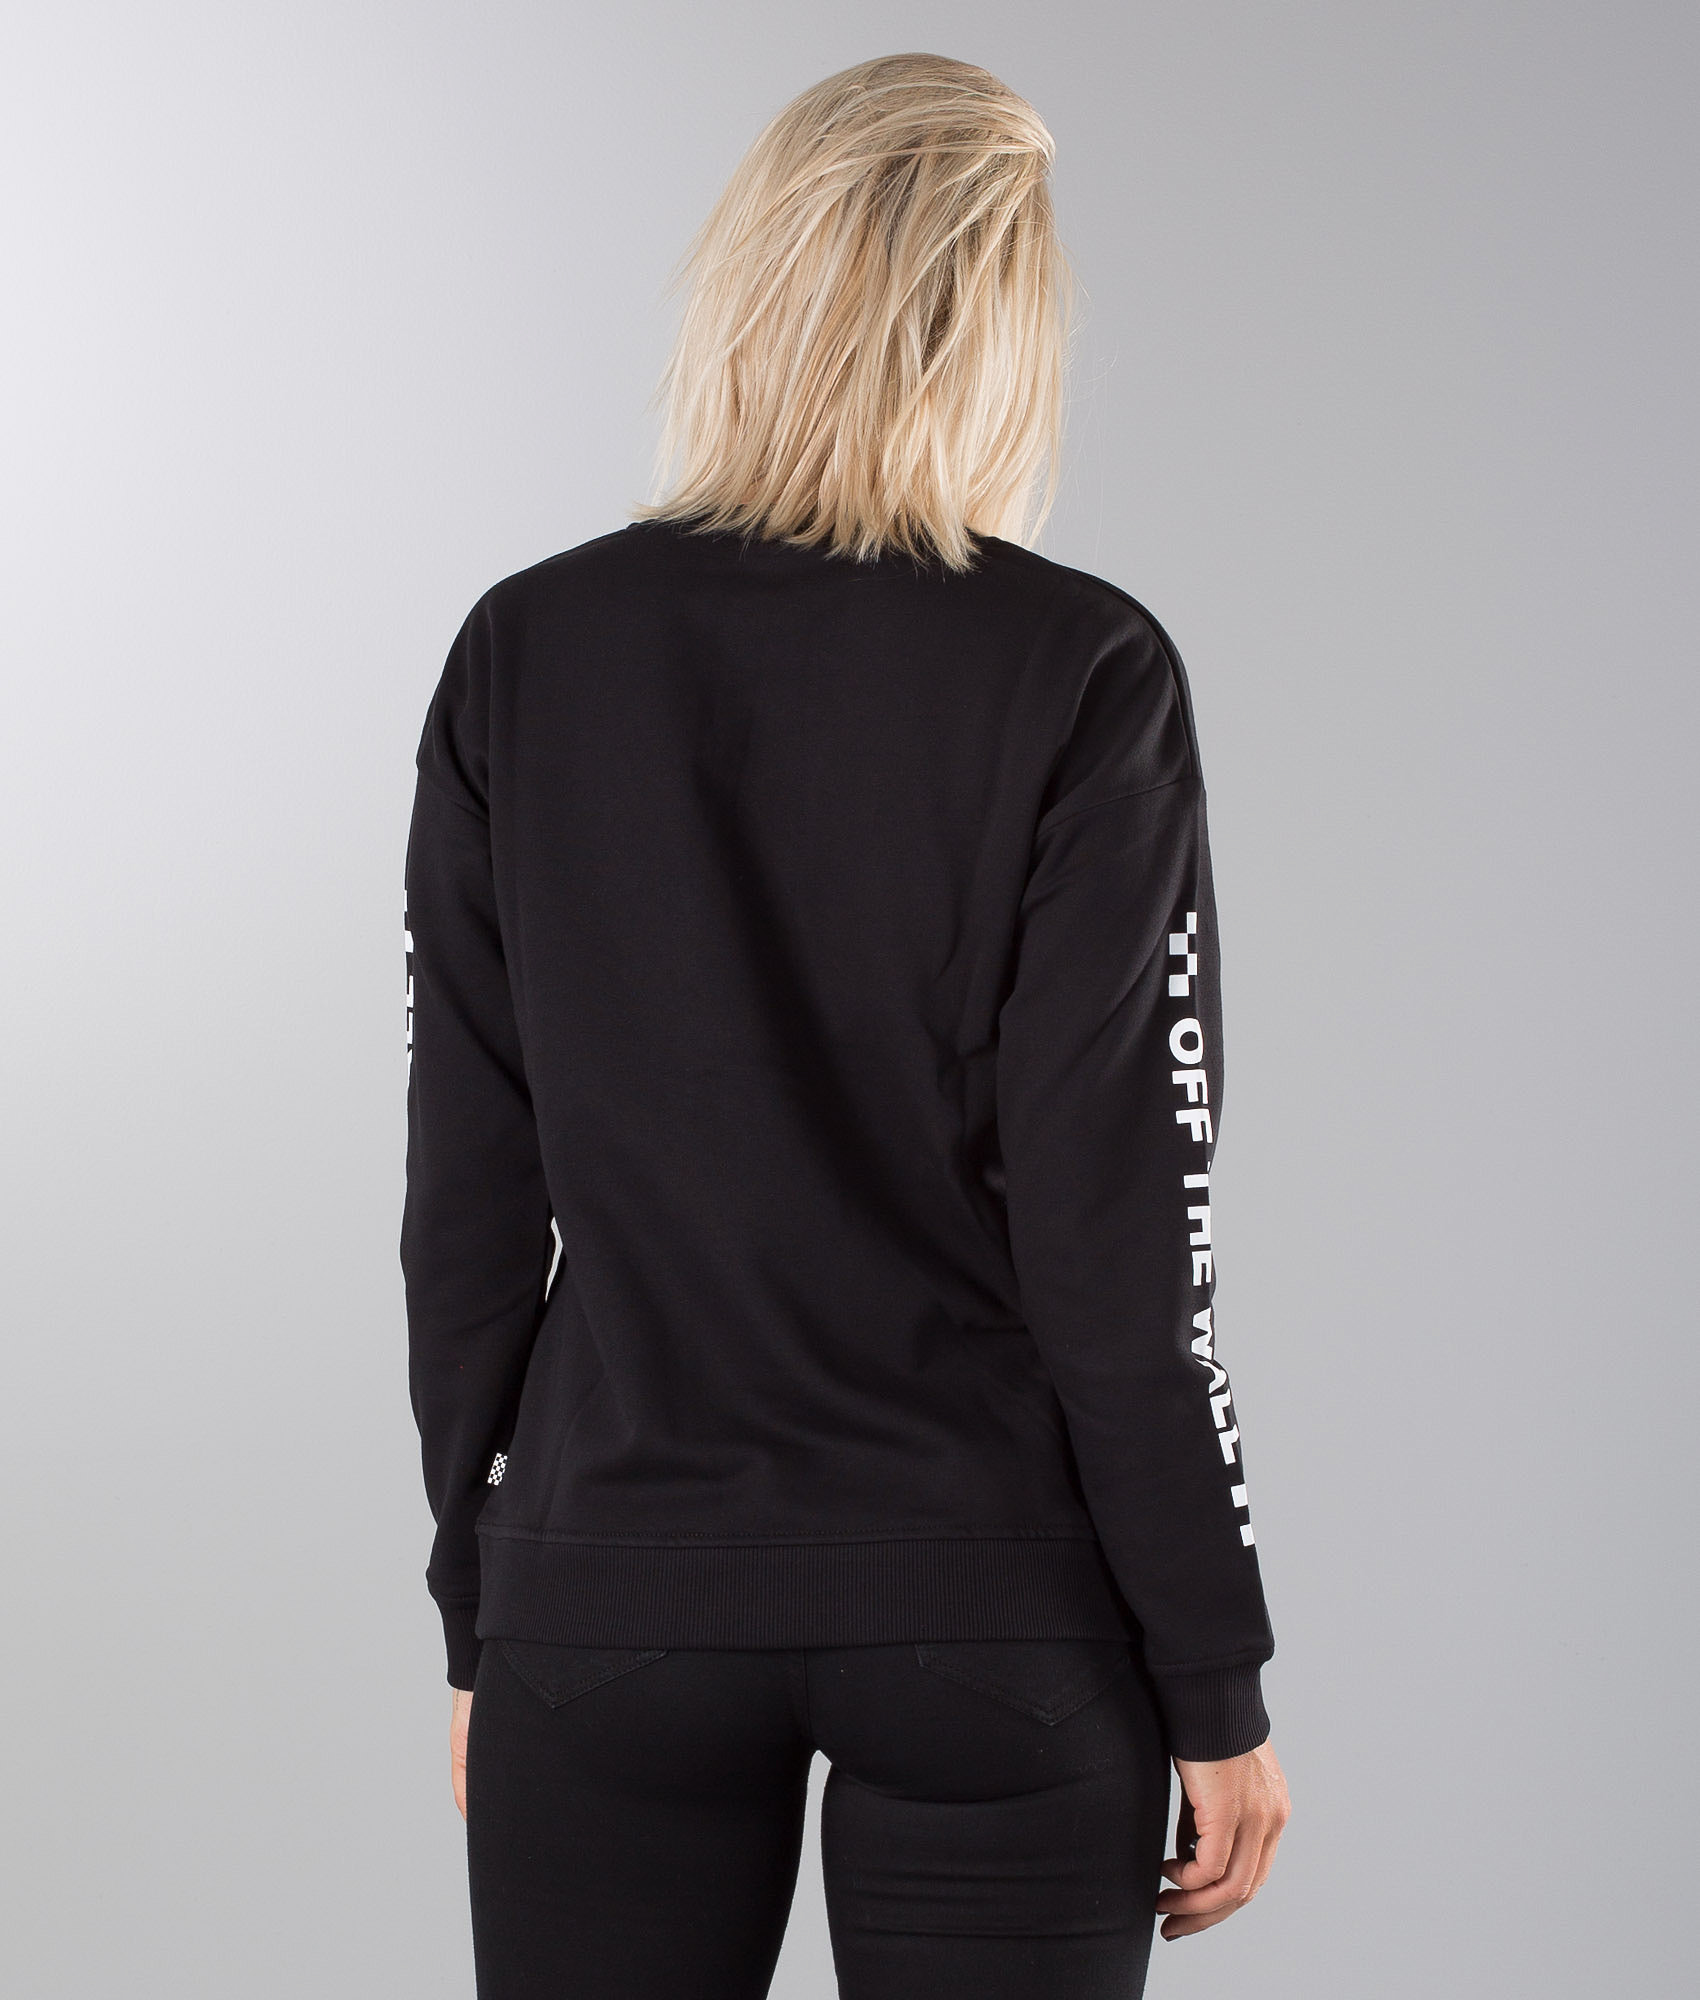 2502b4b0b6 Vans Too Much Fun Sweater Black - Ridestore.com